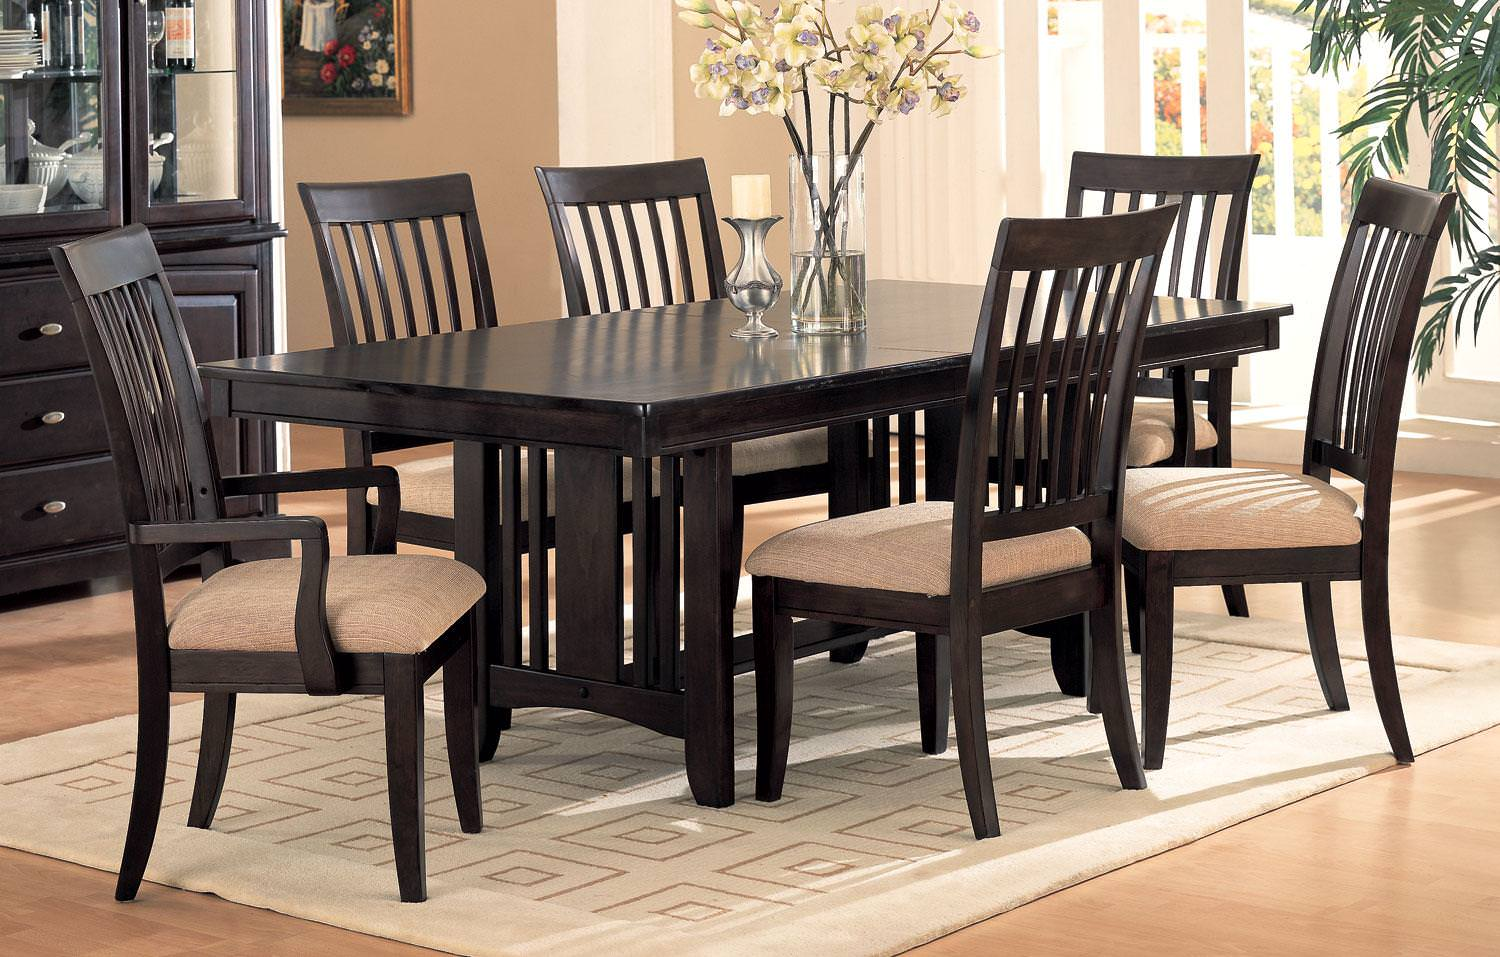 Floor Sample Dining Table by Coaster